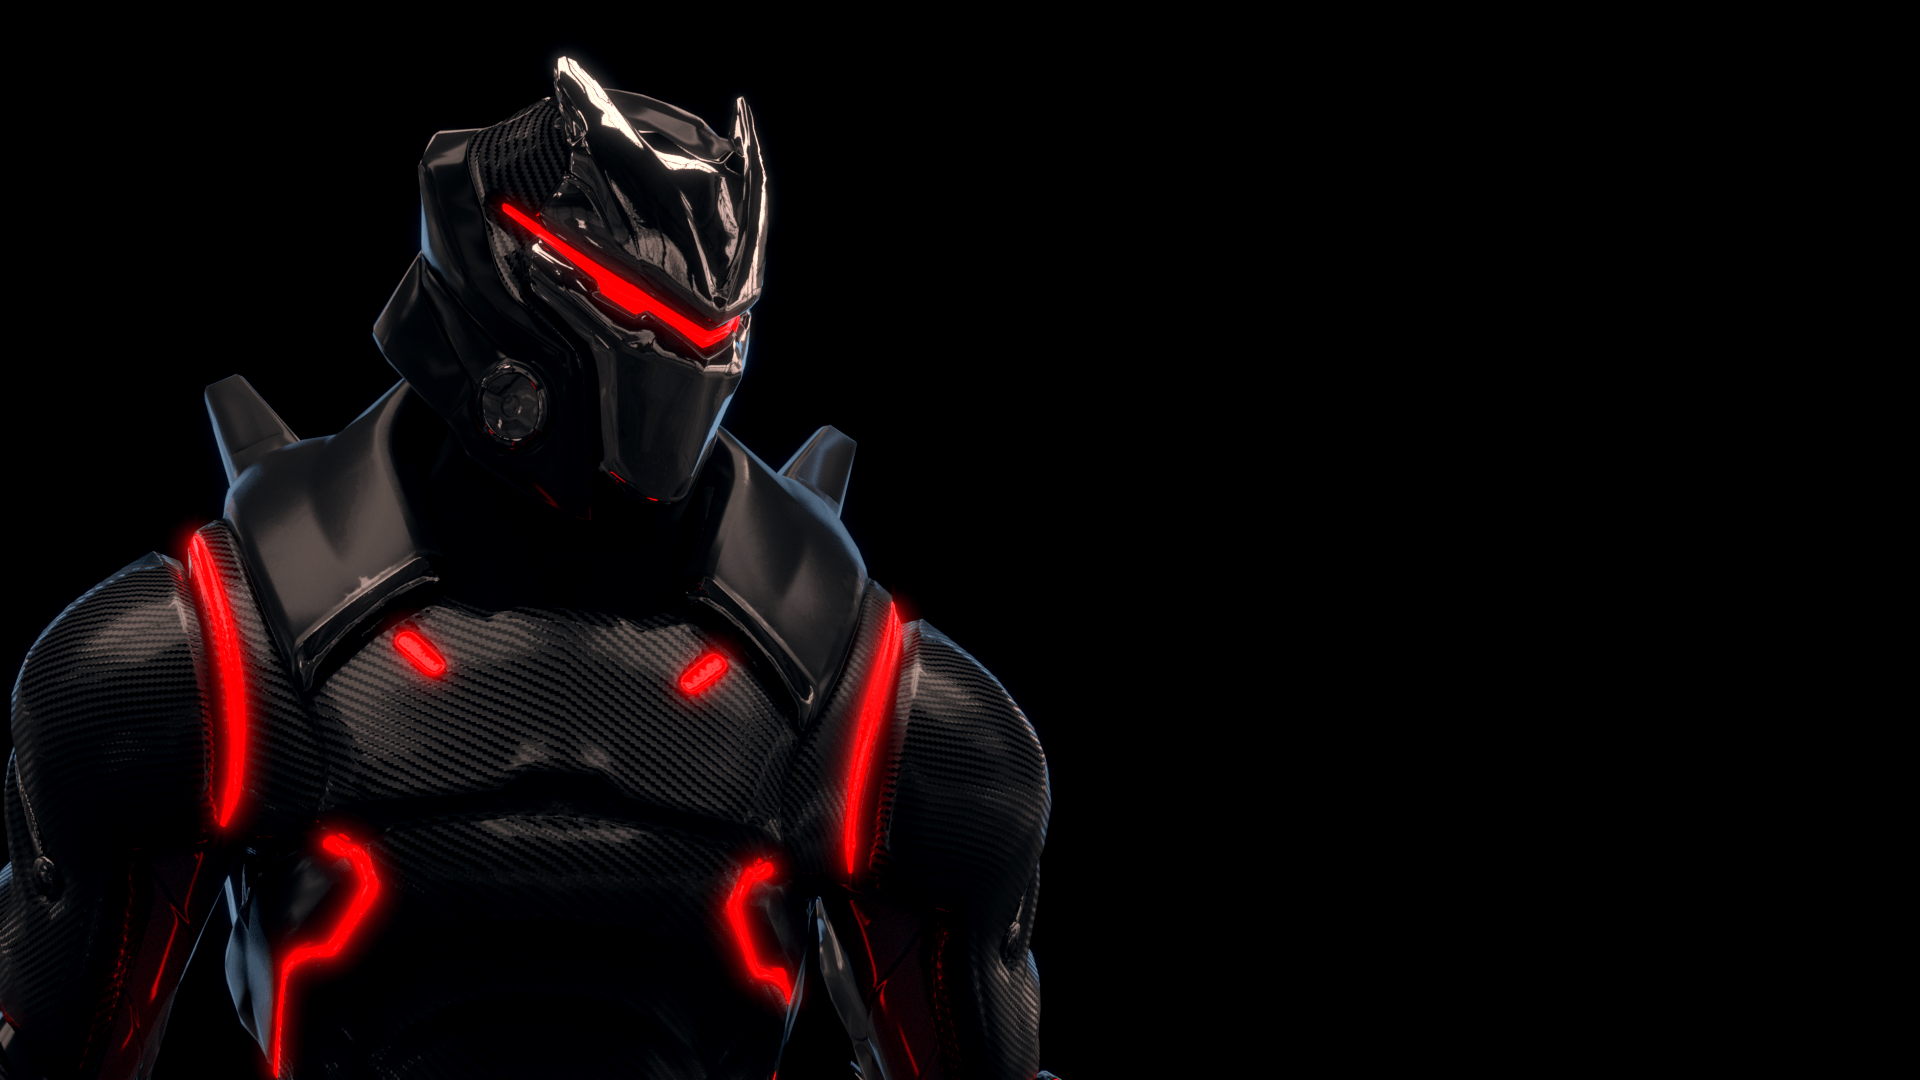 Fortnite Omega Wallpapers Top Free Fortnite Omega Backgrounds Wallpaperaccess In fortnite season 3 it was the john wick style reaper skin which proved to be a sign of. fortnite omega wallpapers top free